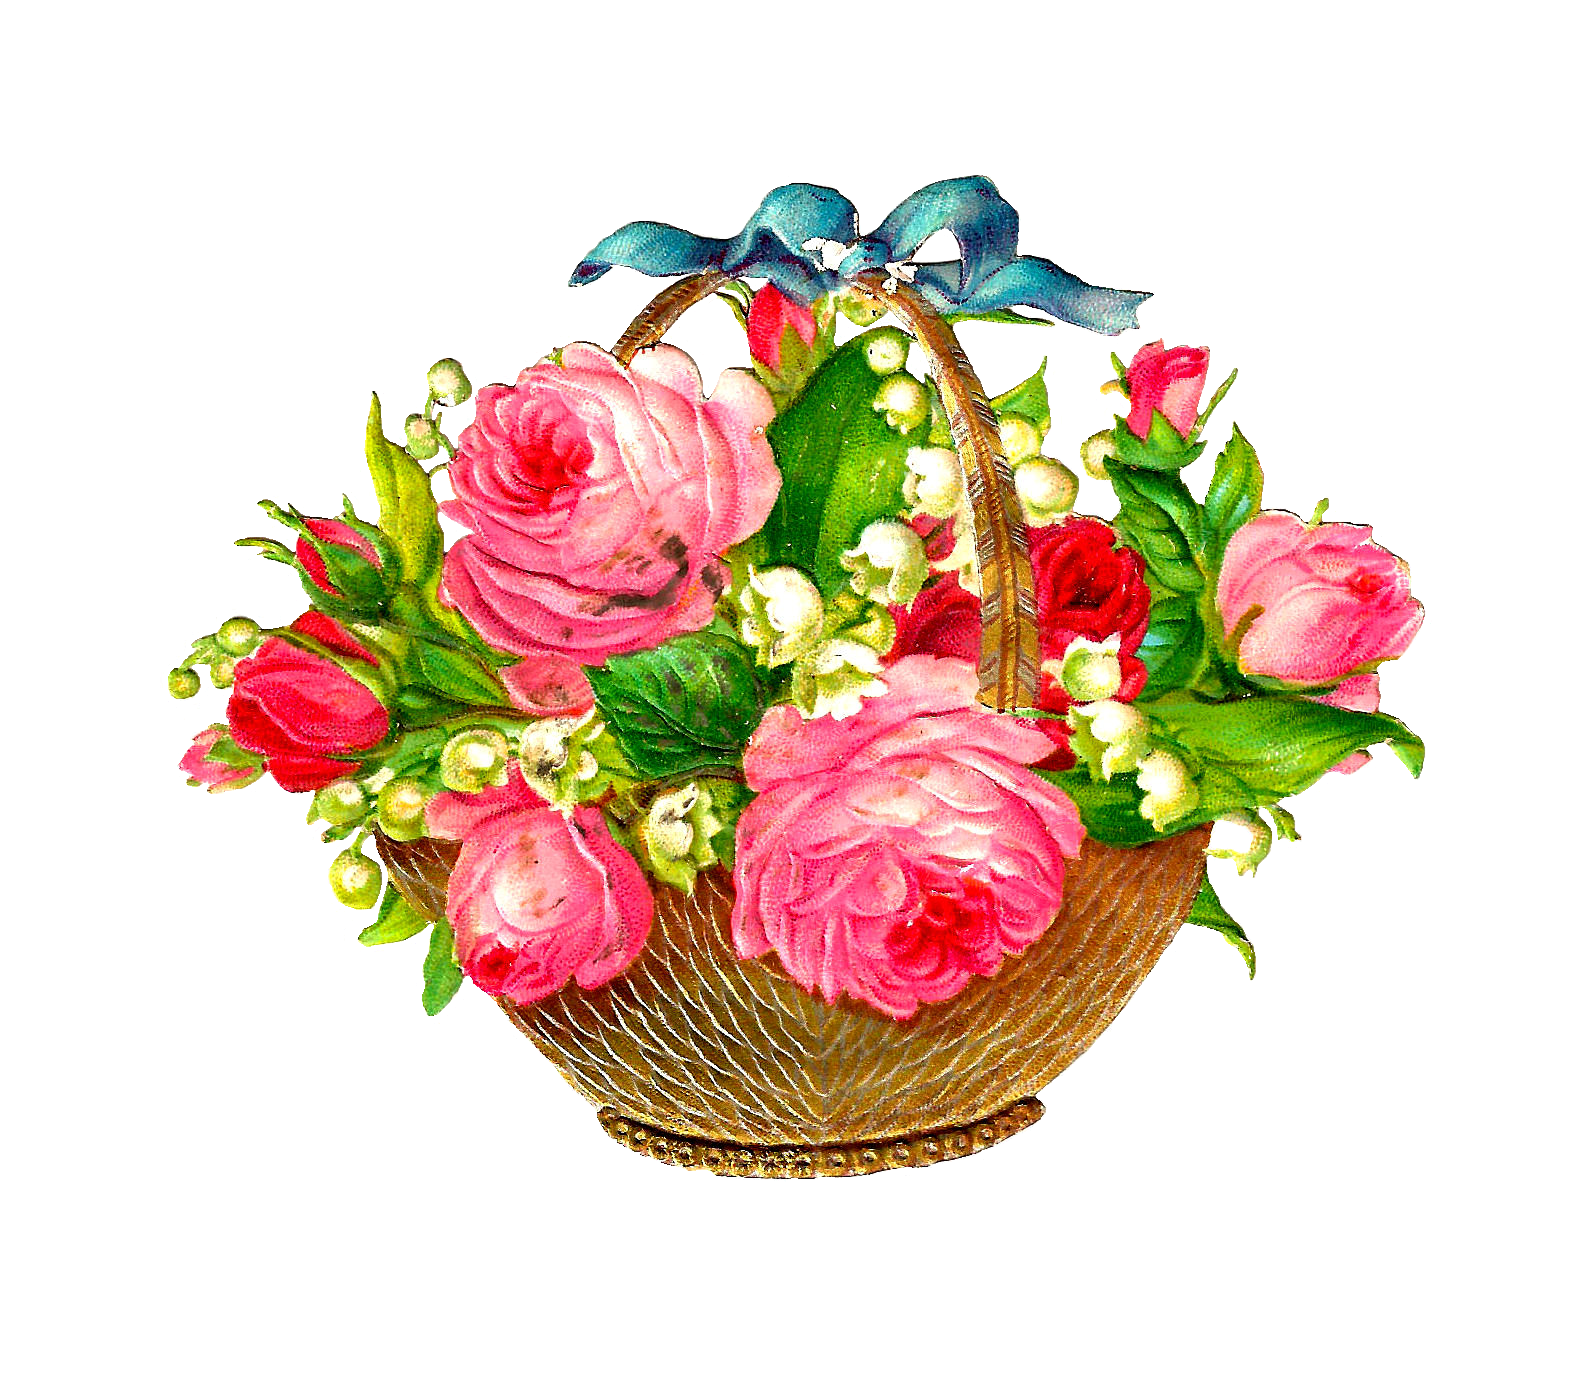 Valley of flowers hd clipart.